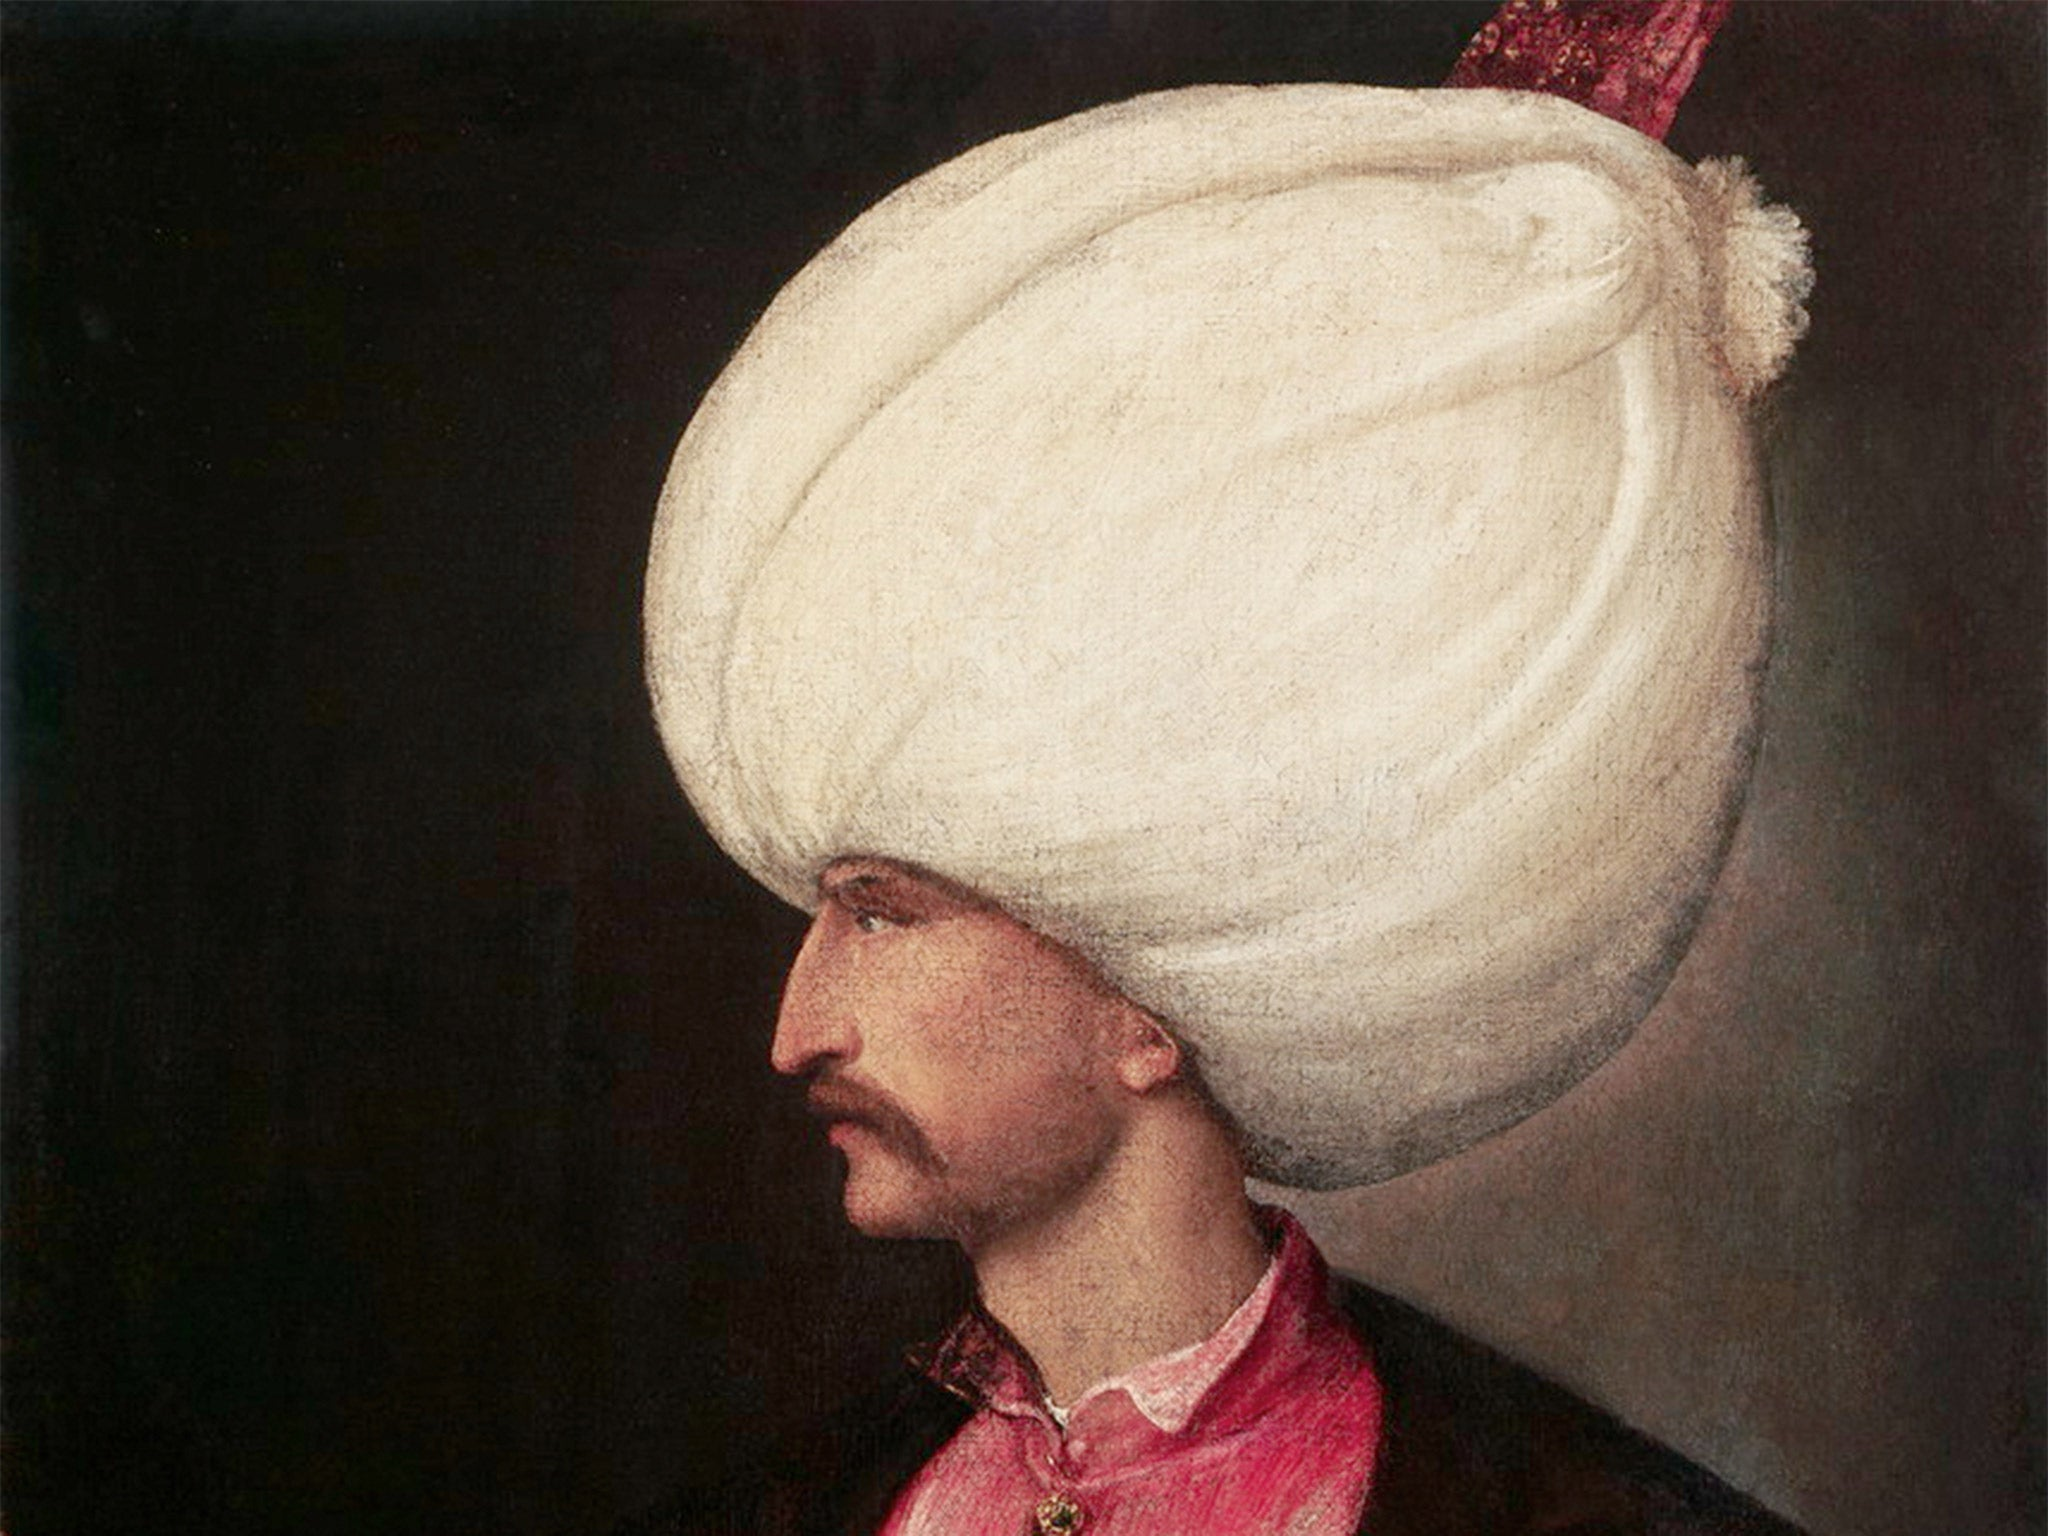 Suleiman the Magnificent cast